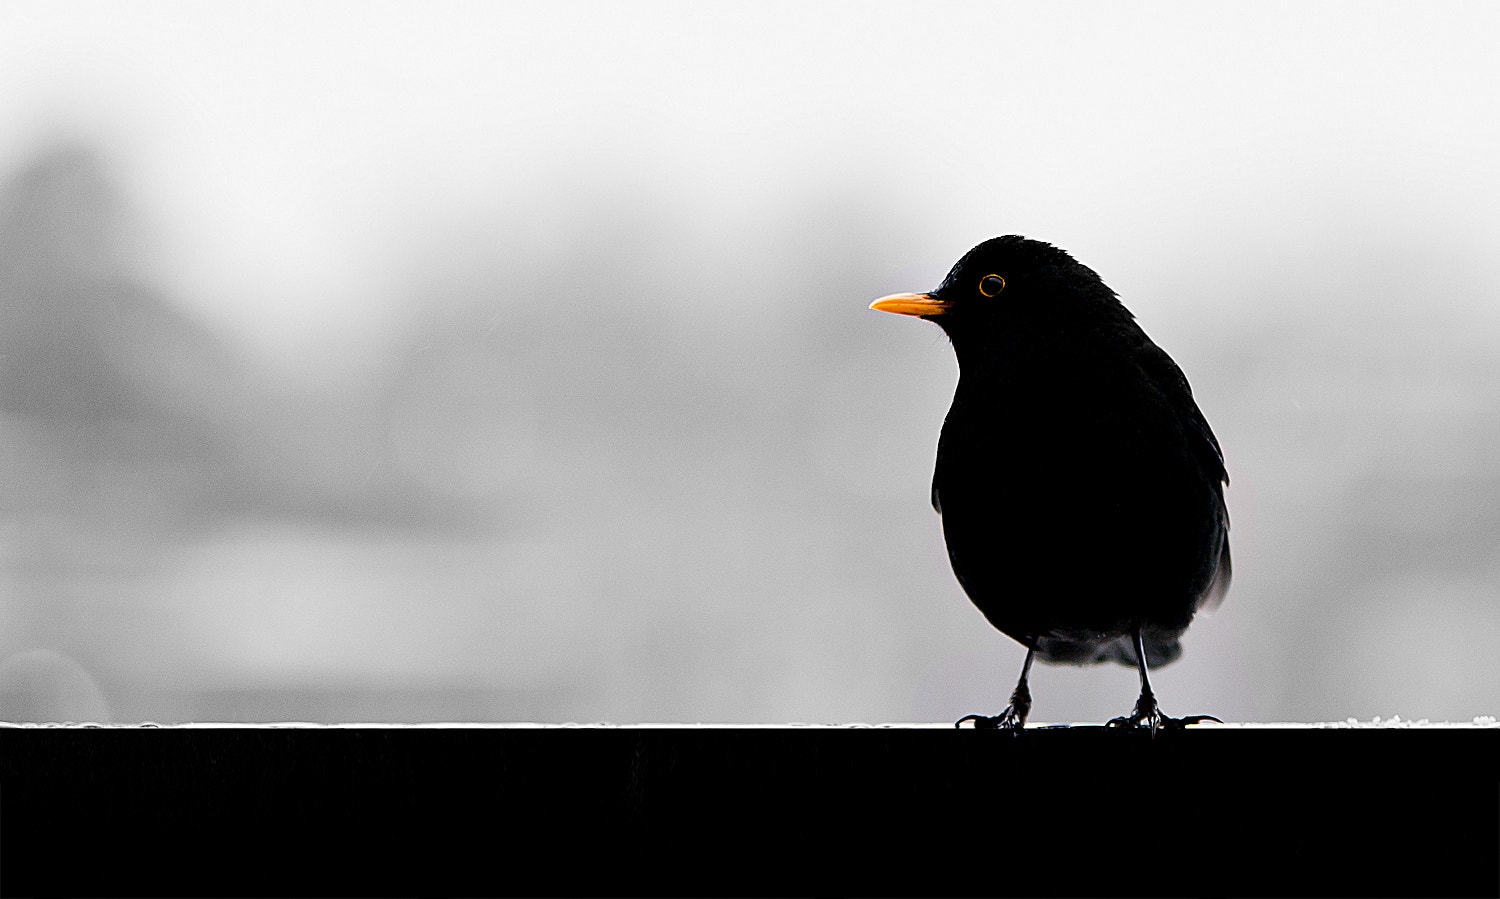 Photograph Blackie by Mikael Sundberg on 500px